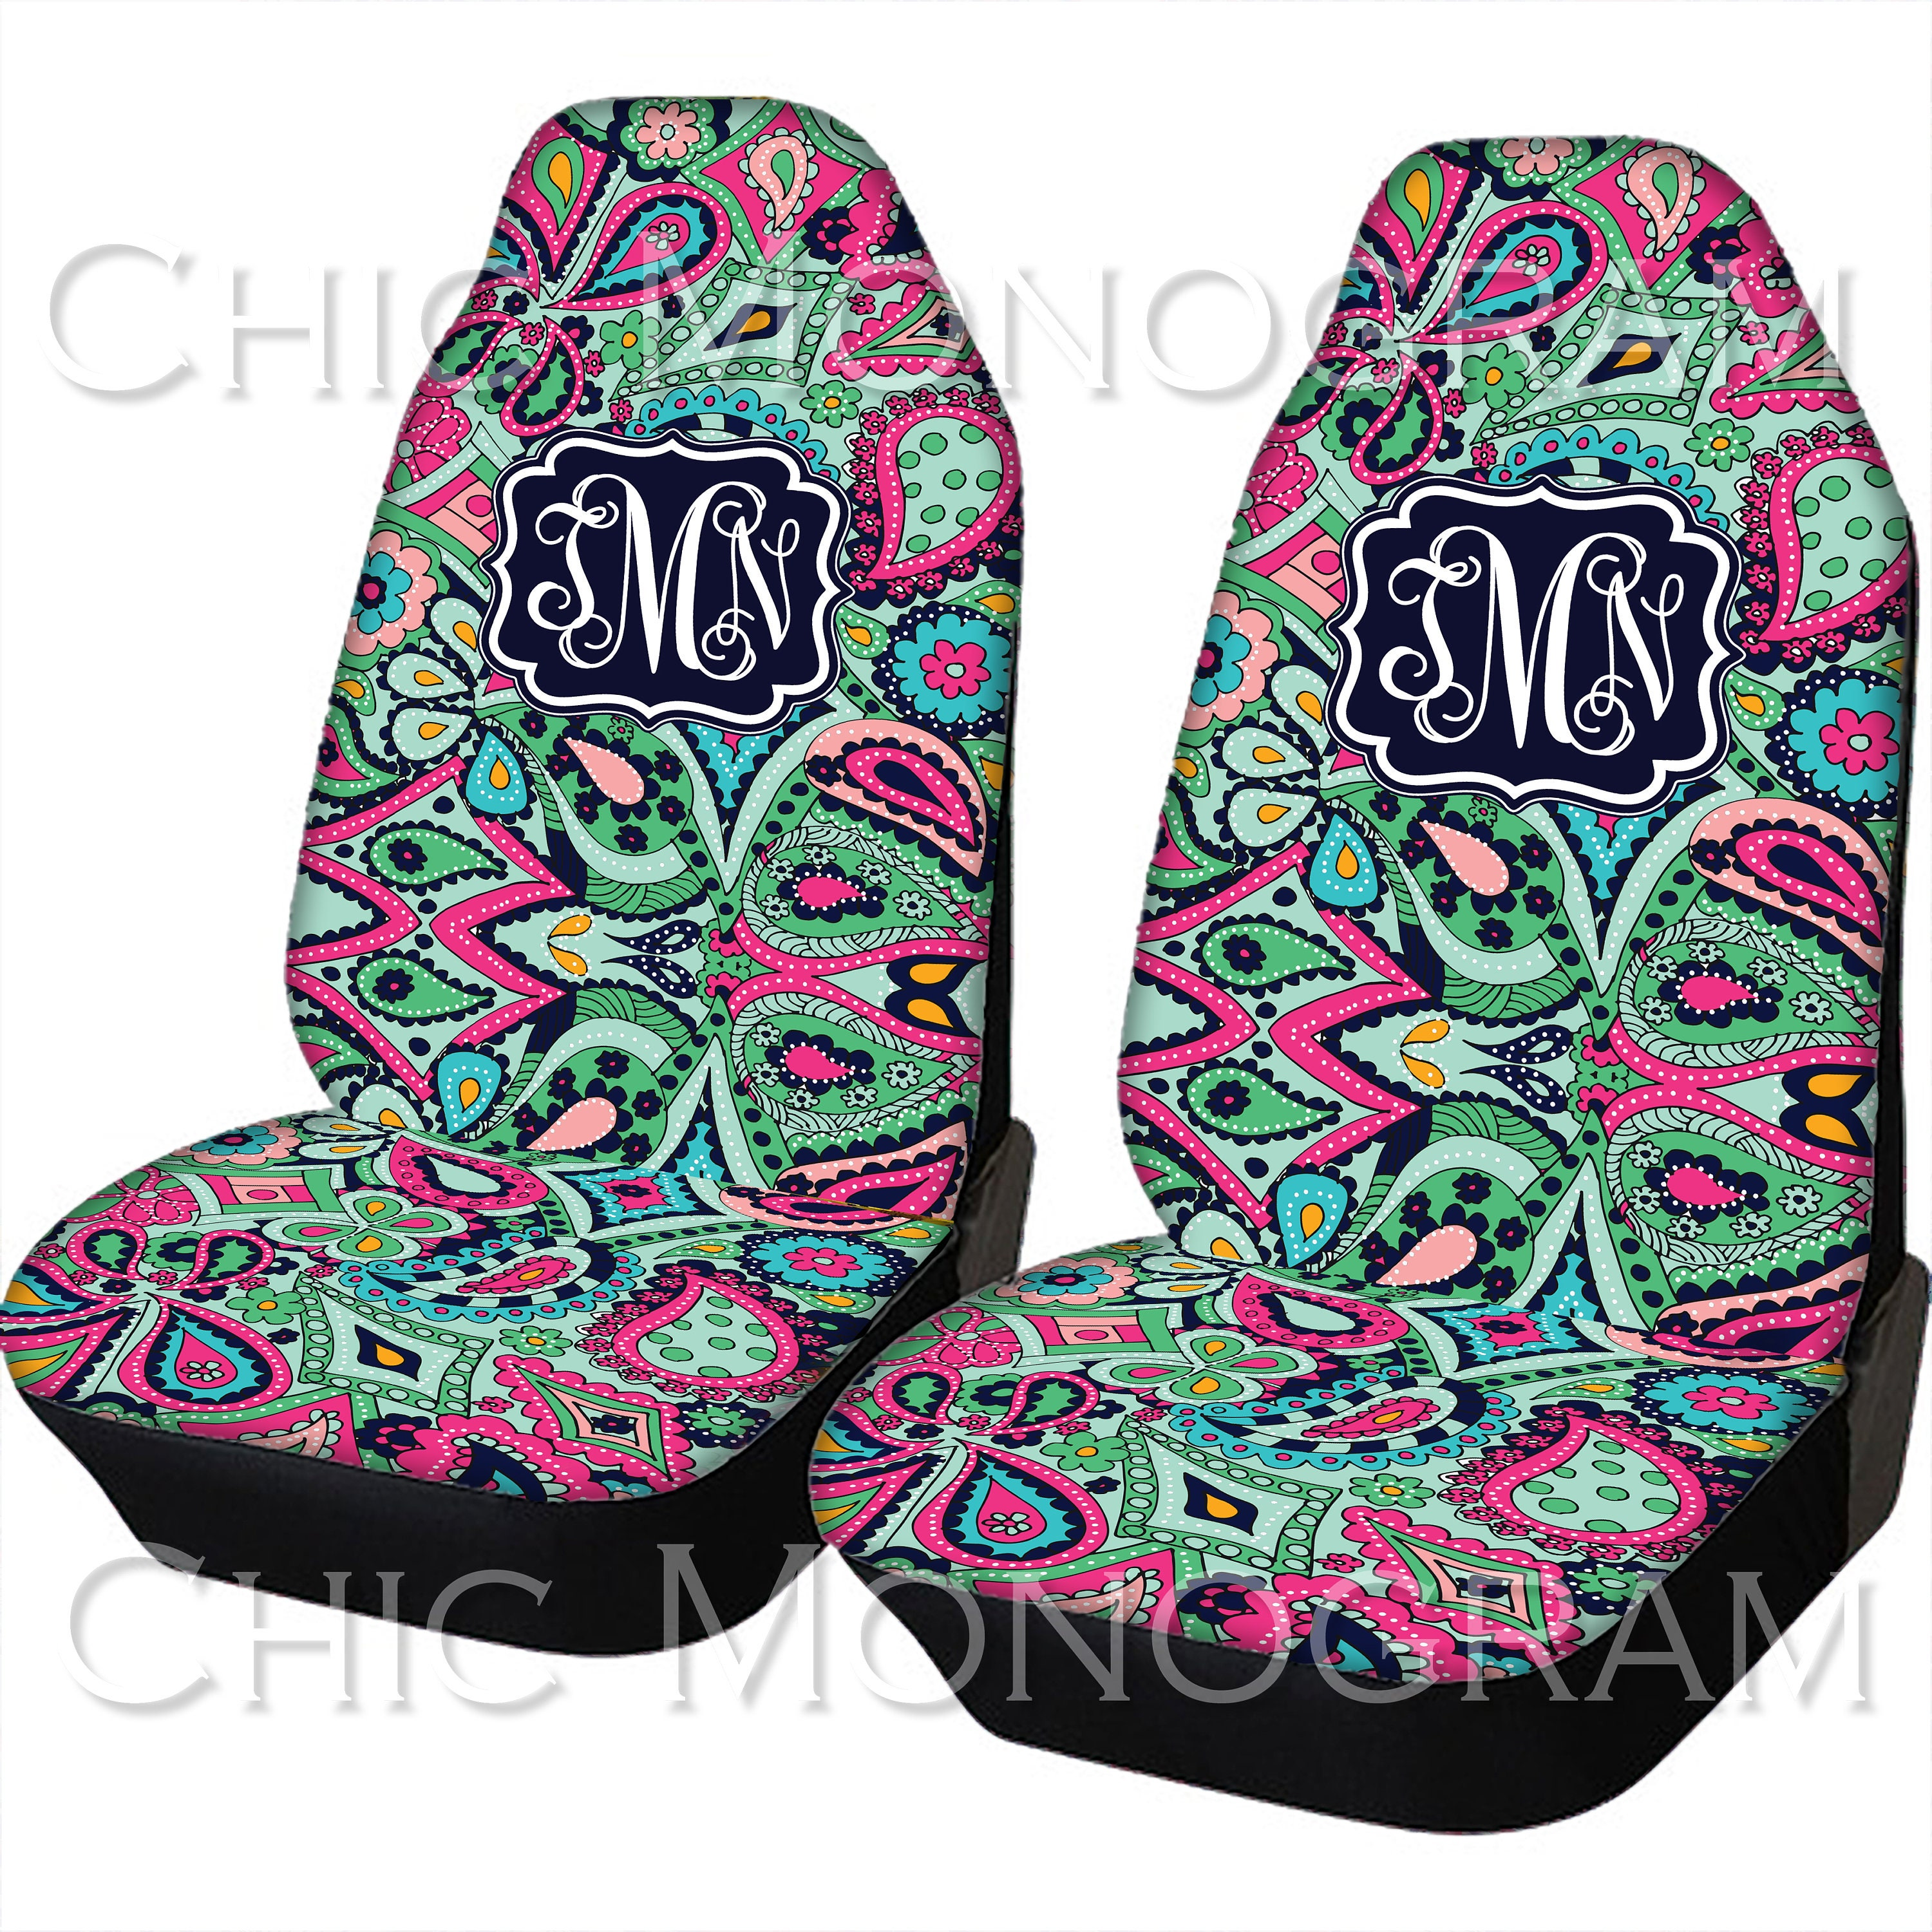 Seat Covers For Vehicle Paisley Jewels Car Front Cover Monogram Personalized Accessories